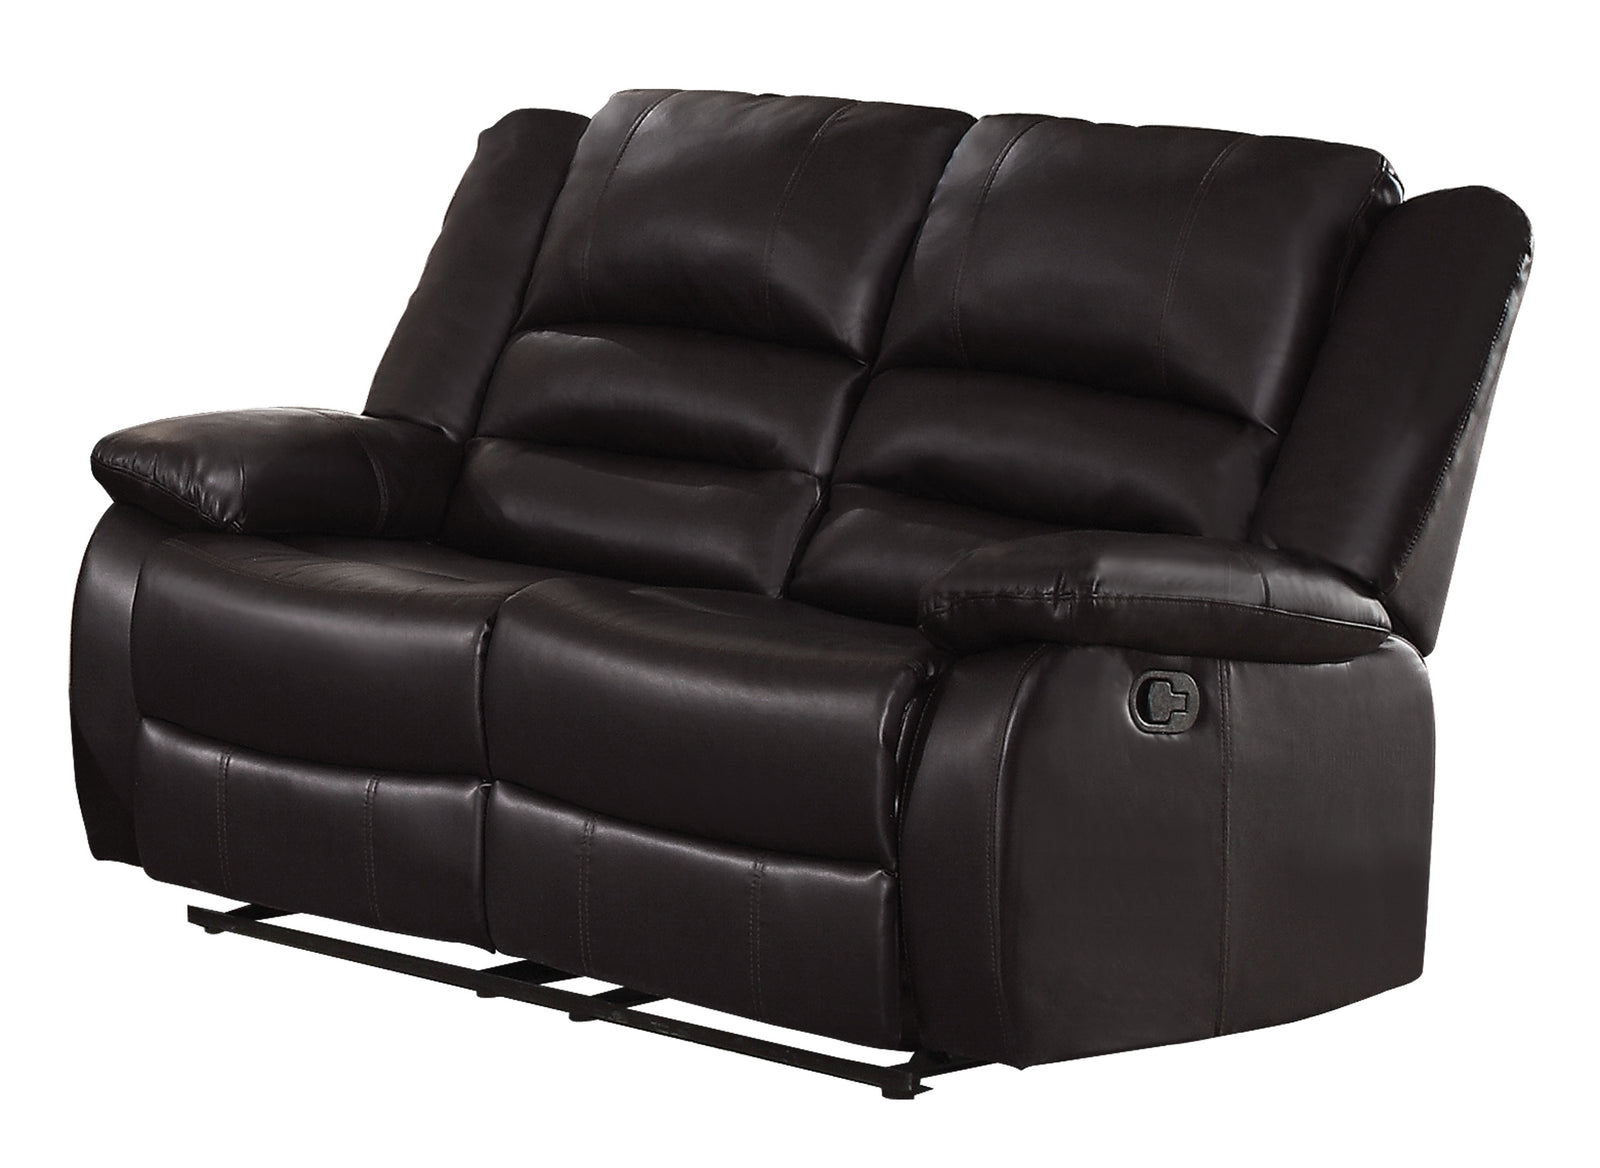 Charles Recliner - Brown